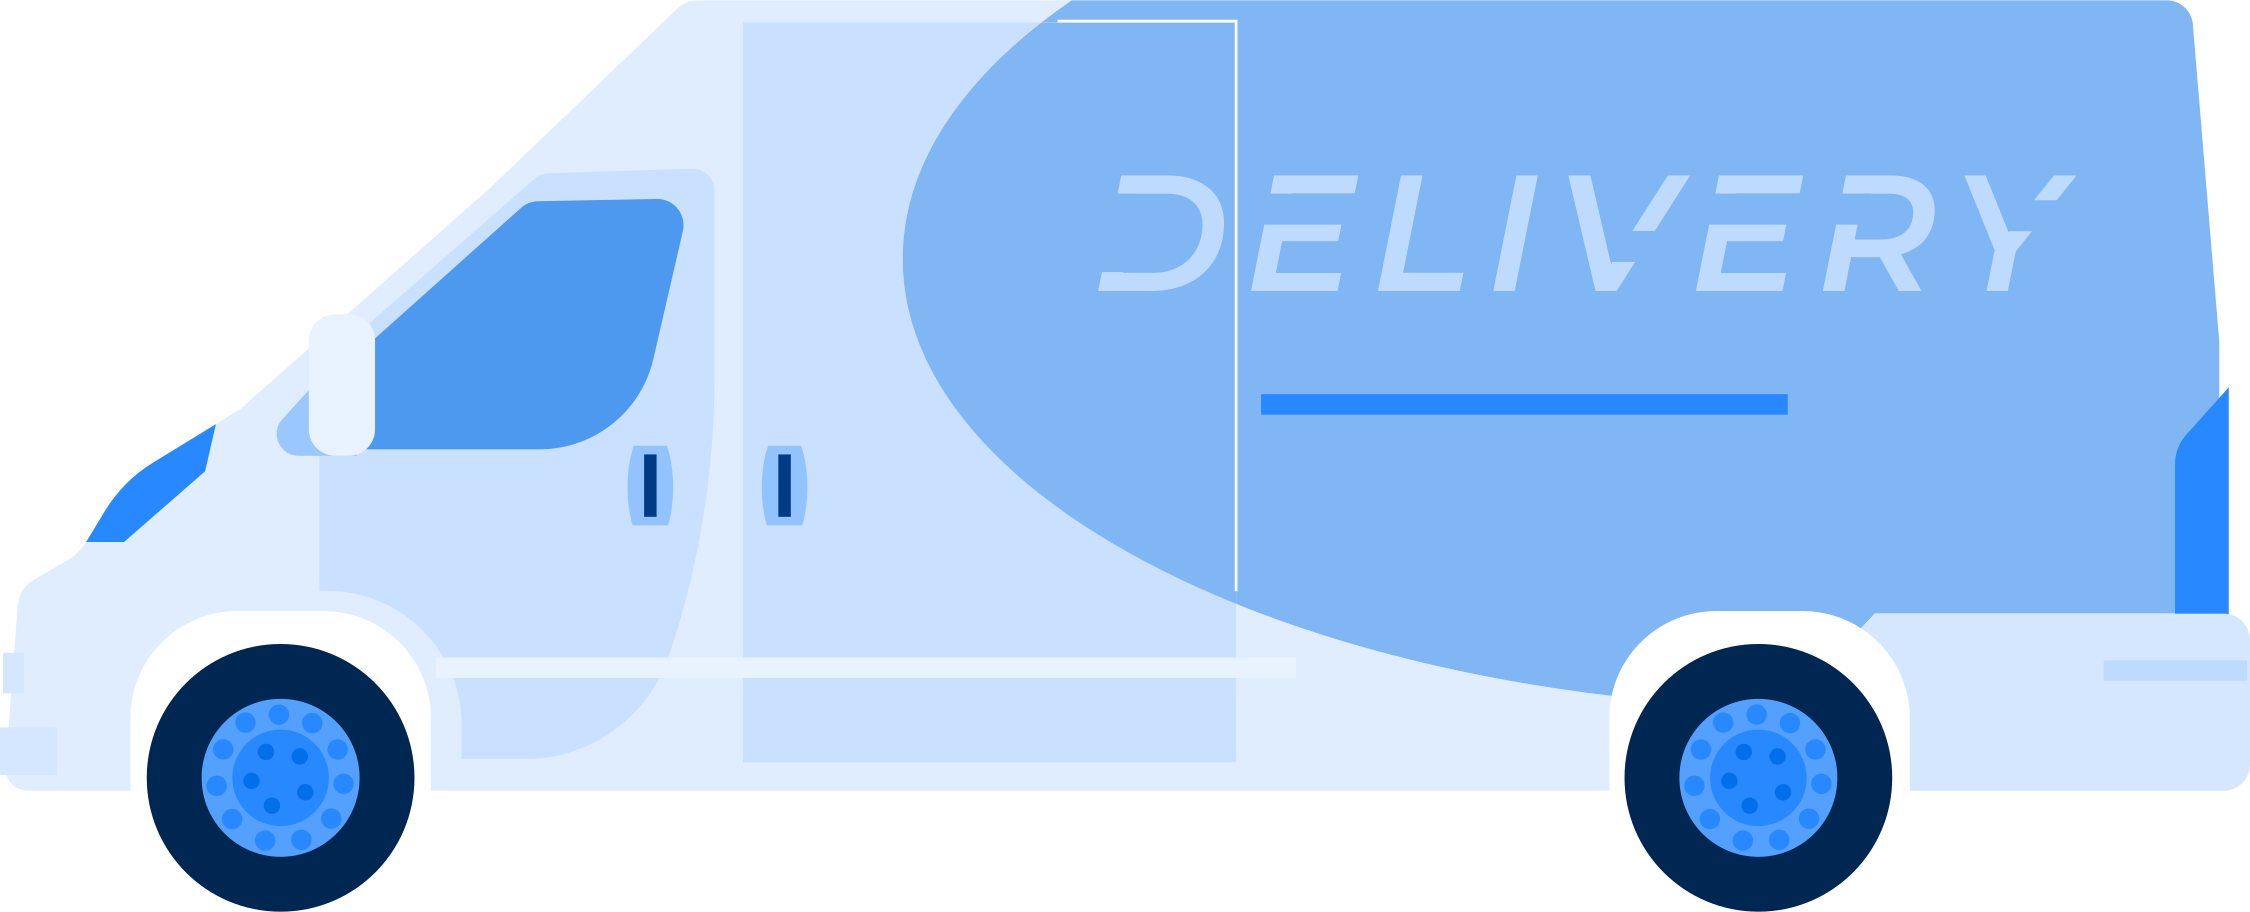 style auto van delivery Vector images in PNG and SVG | Icons8 Illustrations